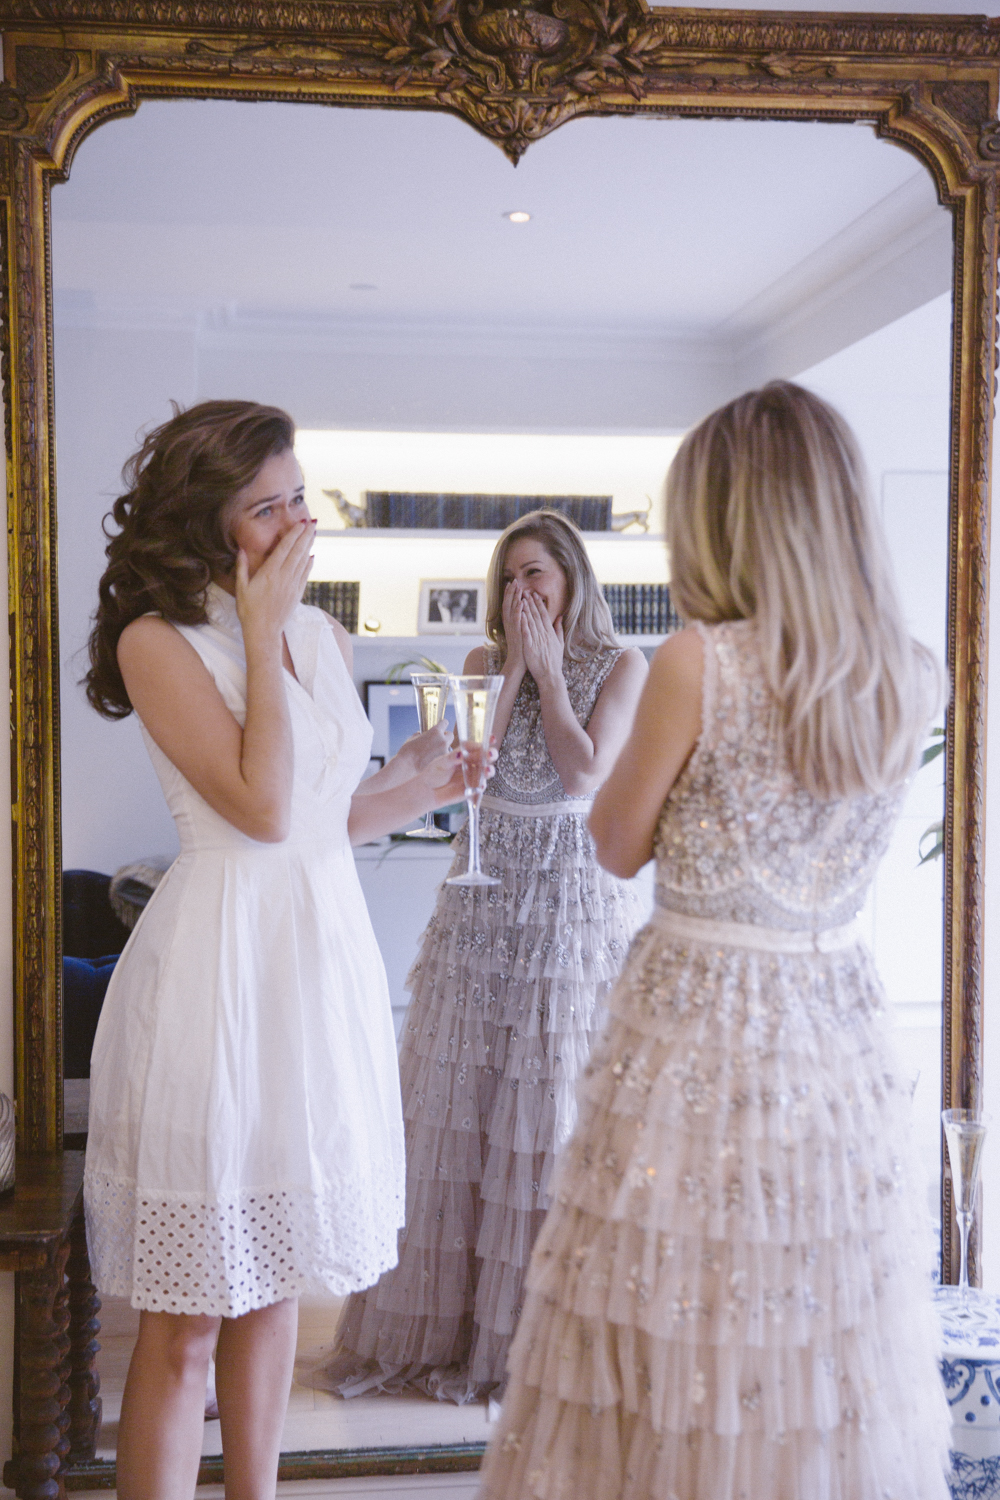 fec406f424 Maid Of Honour Dress Shopping - The Londoner